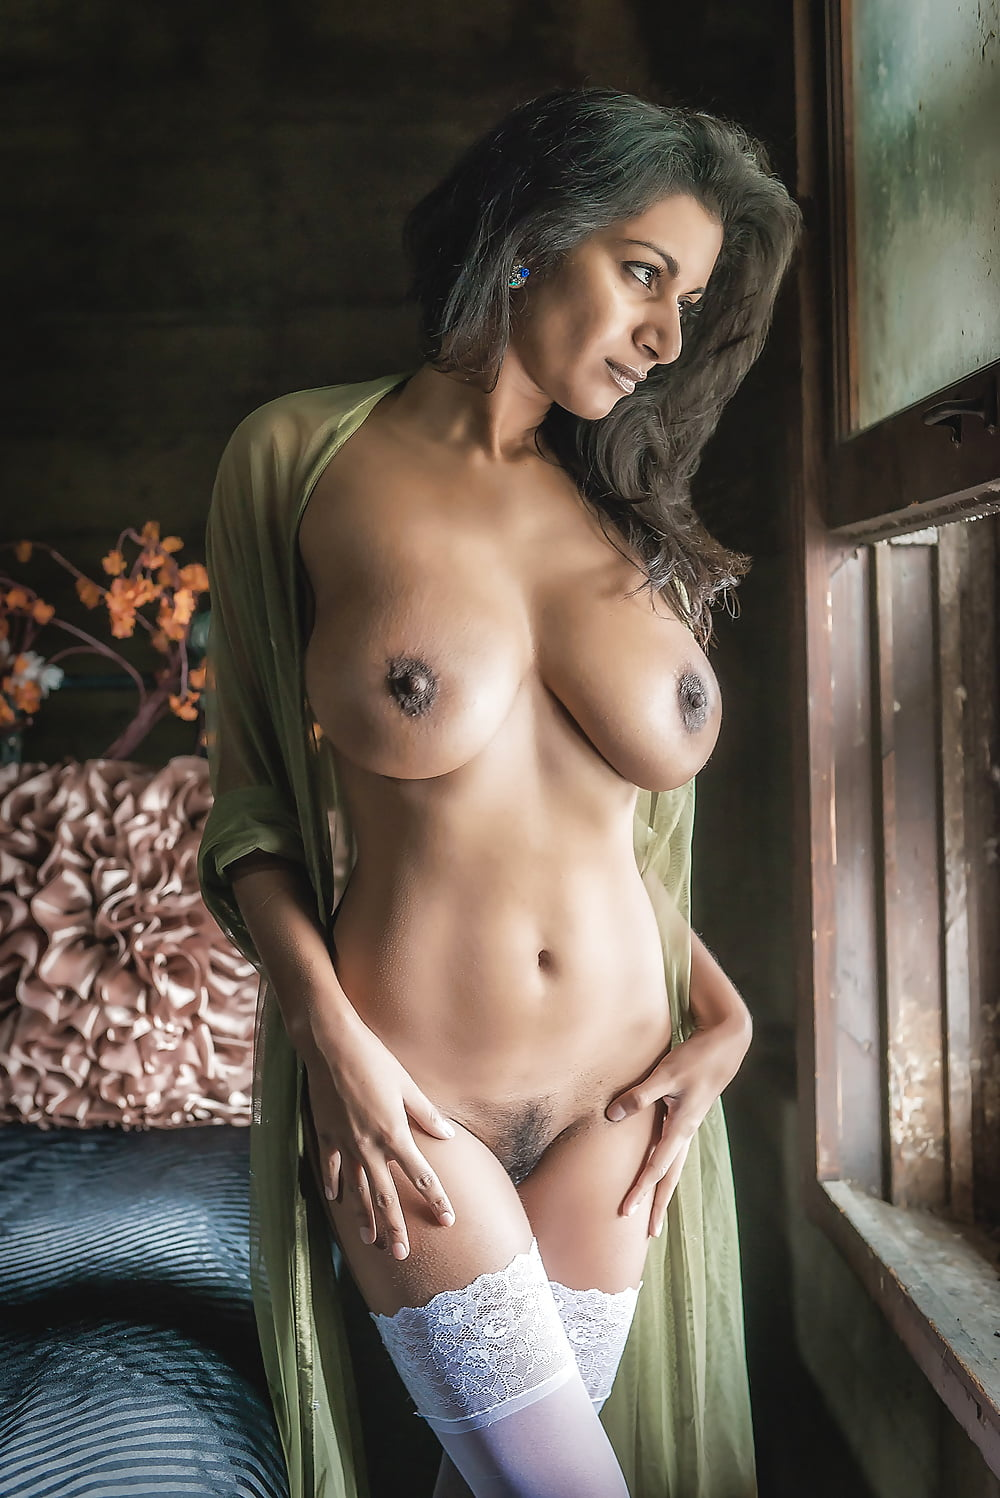 Dev nude pictures, different ways to finger a pussy